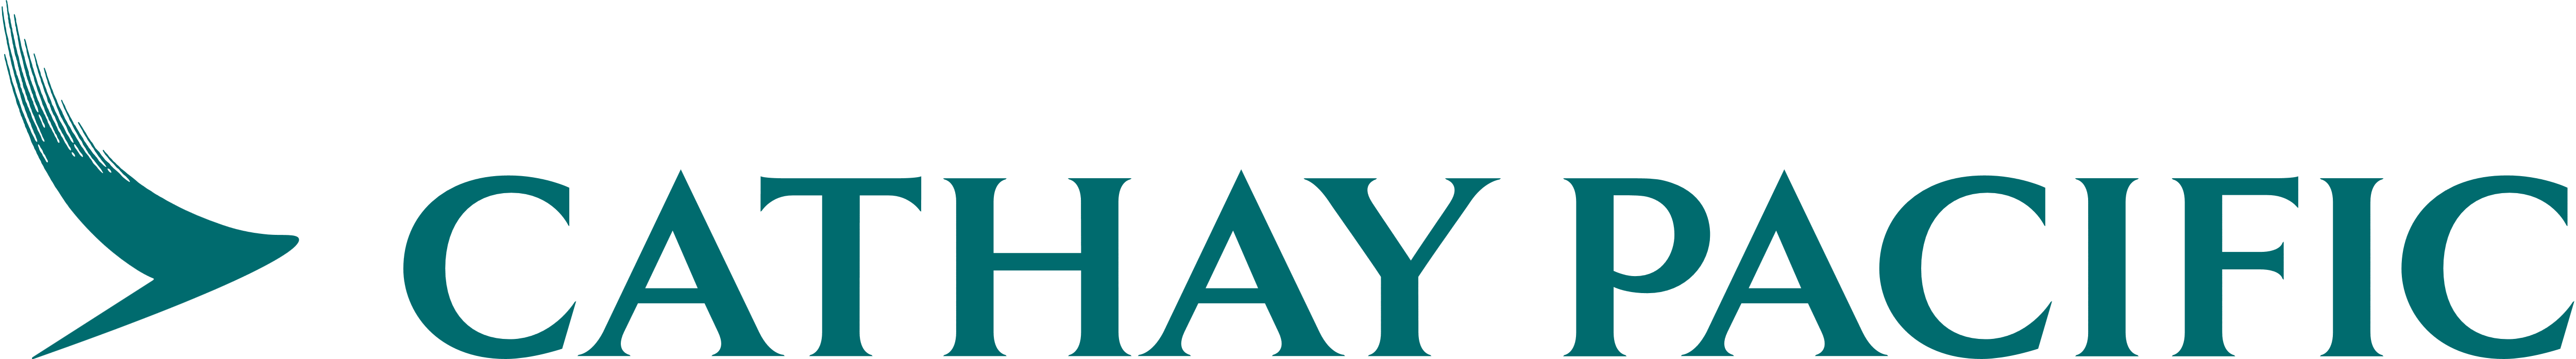 Cathay Pacific – Logos Download